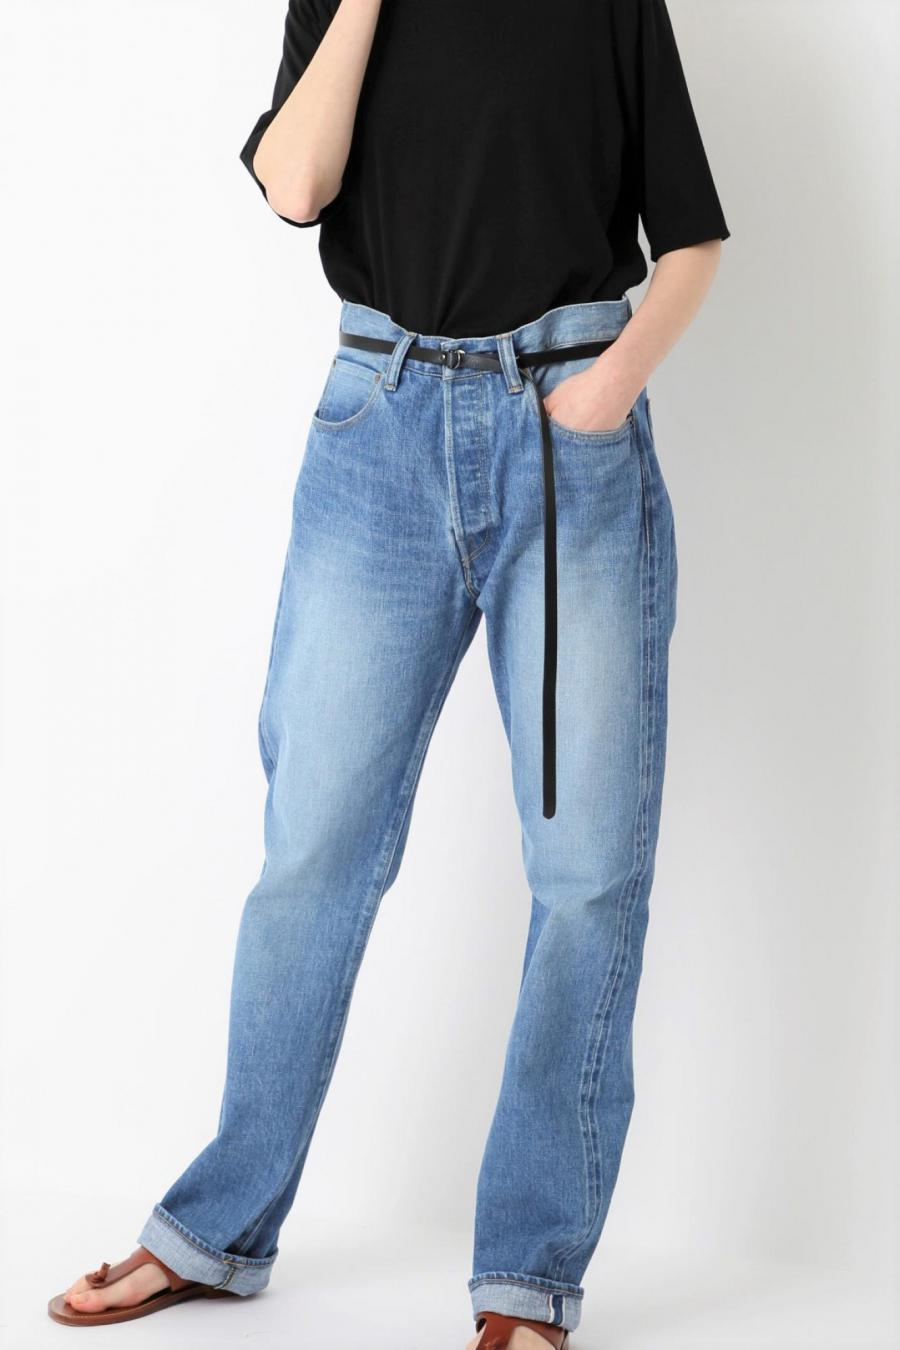 NARROW HANGING BELT